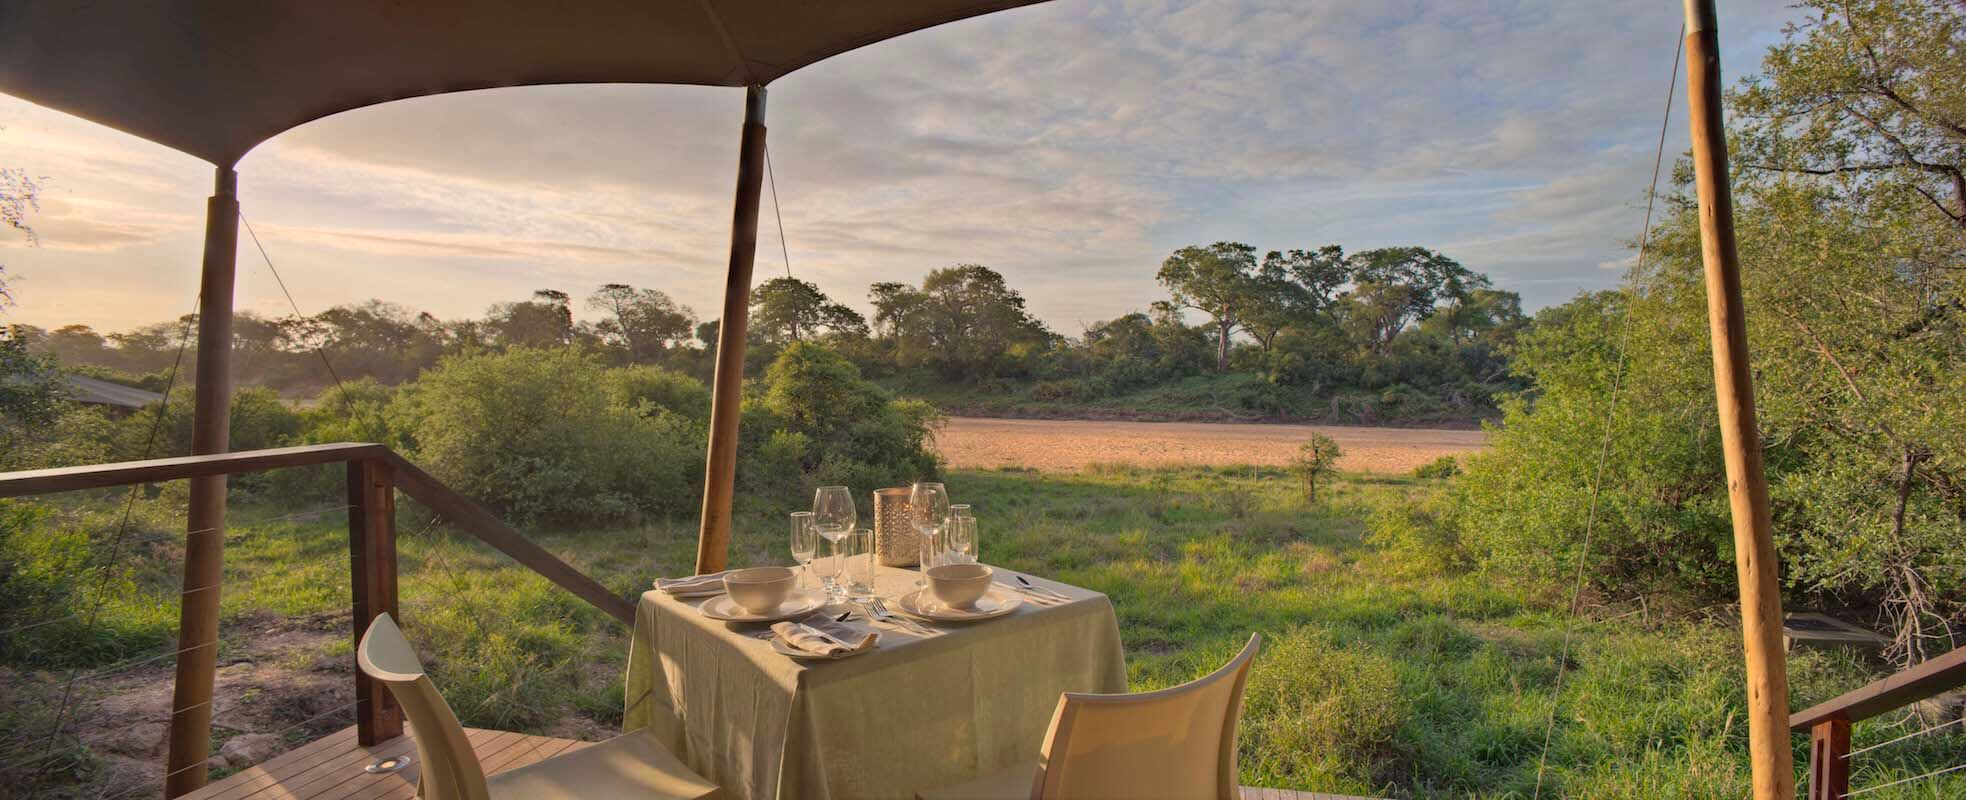 SouthAfrica_GreaterKrugerNationalPark_andBeyondNgalaTentedCamp_Tent View Private Dining